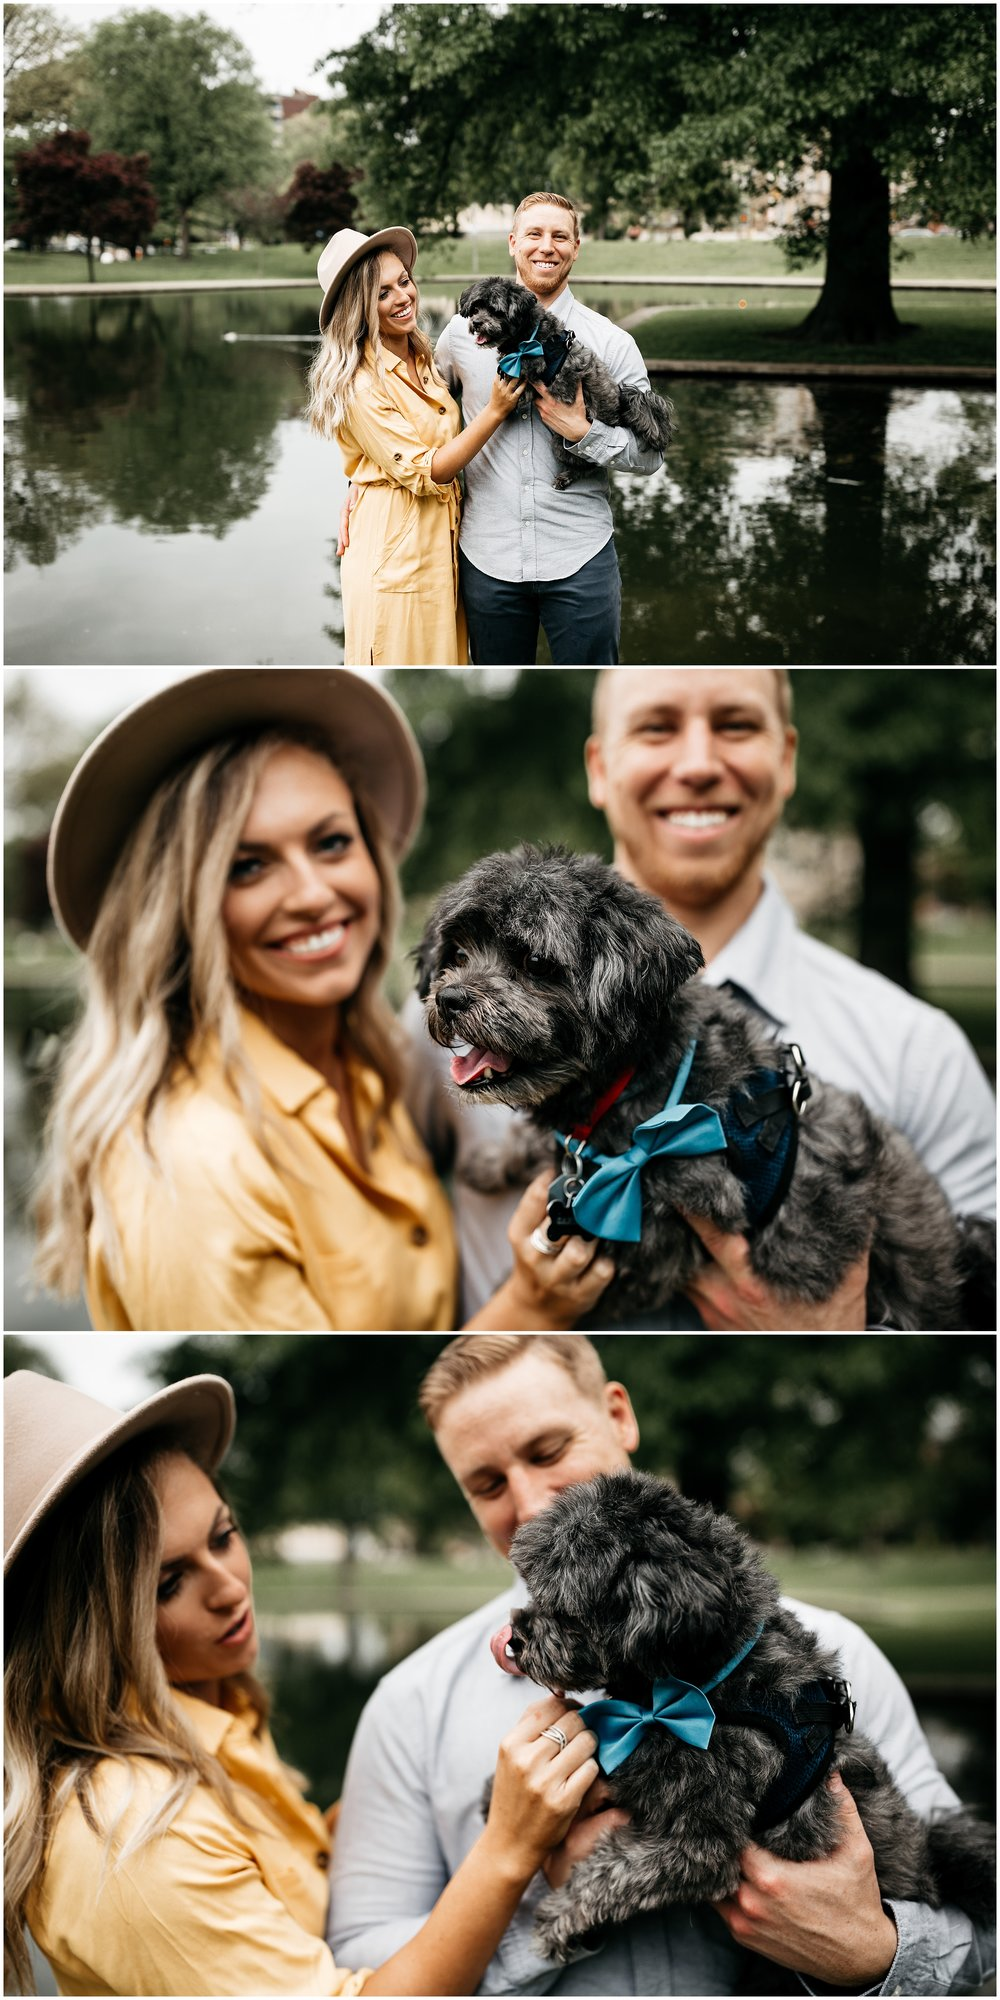 pittsburghengagementphotos_0001.jpg